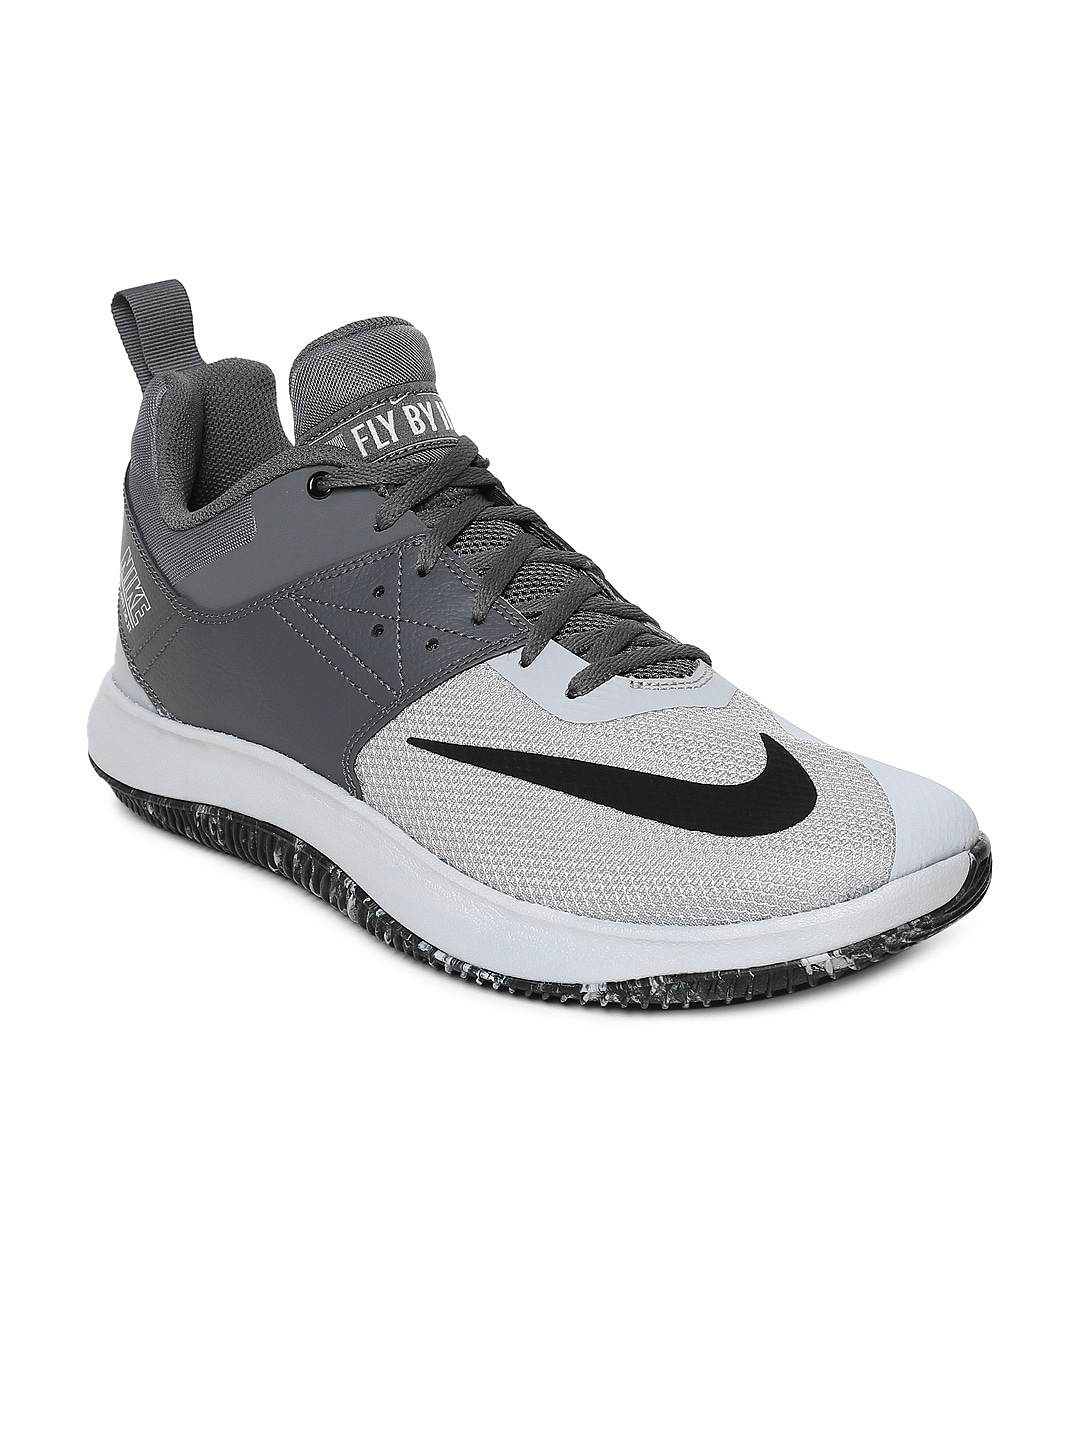 a74302cb3a44 Nike Sport Shoe - Buy Nike Sport Shoes At Best Price Online